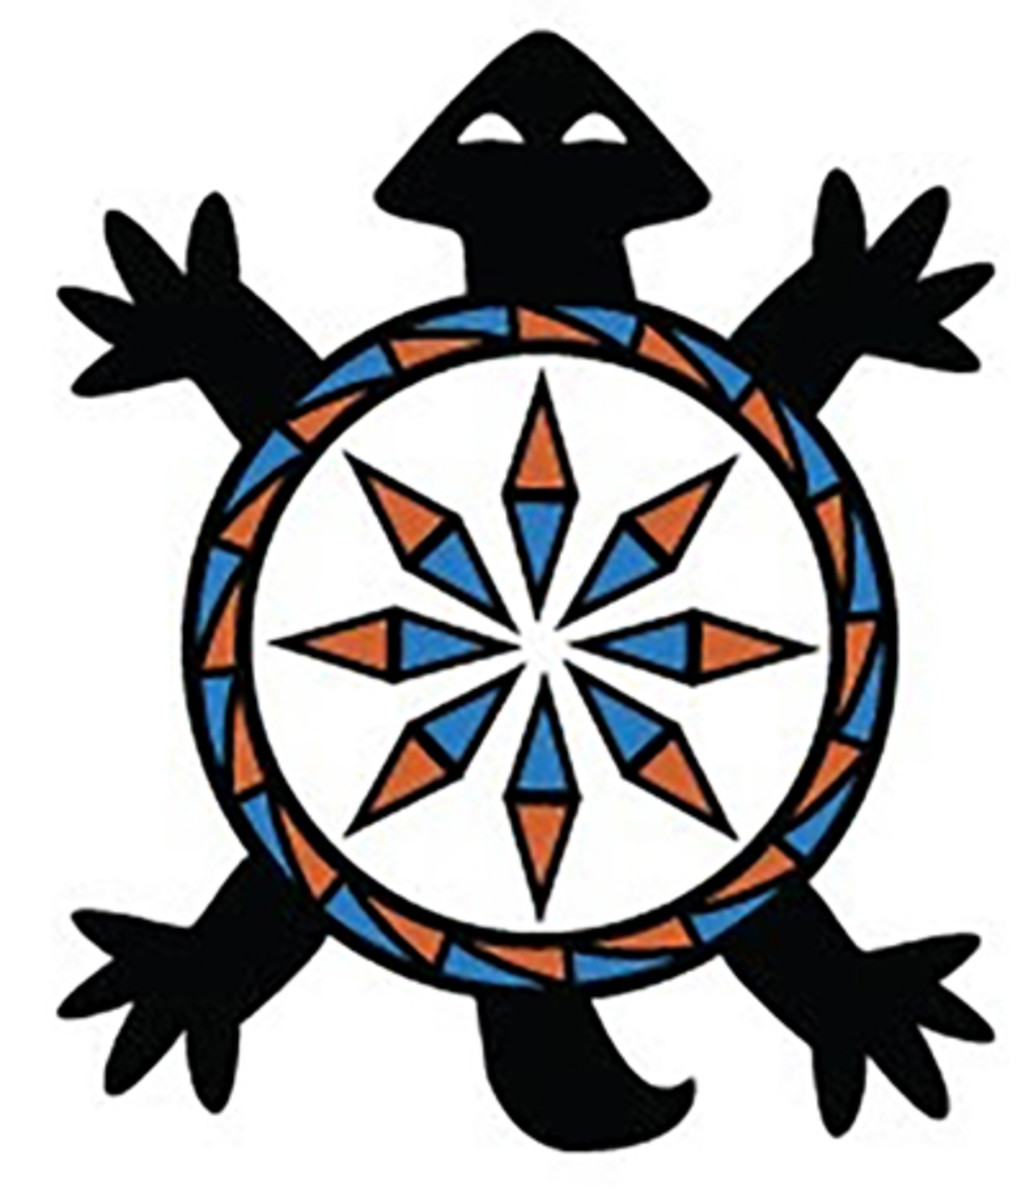 First Nations Development Institute is accepting proposals for its Native Youth and Culture Fund for projects that focus on youth and incorporate culture and tradition to address social issues.